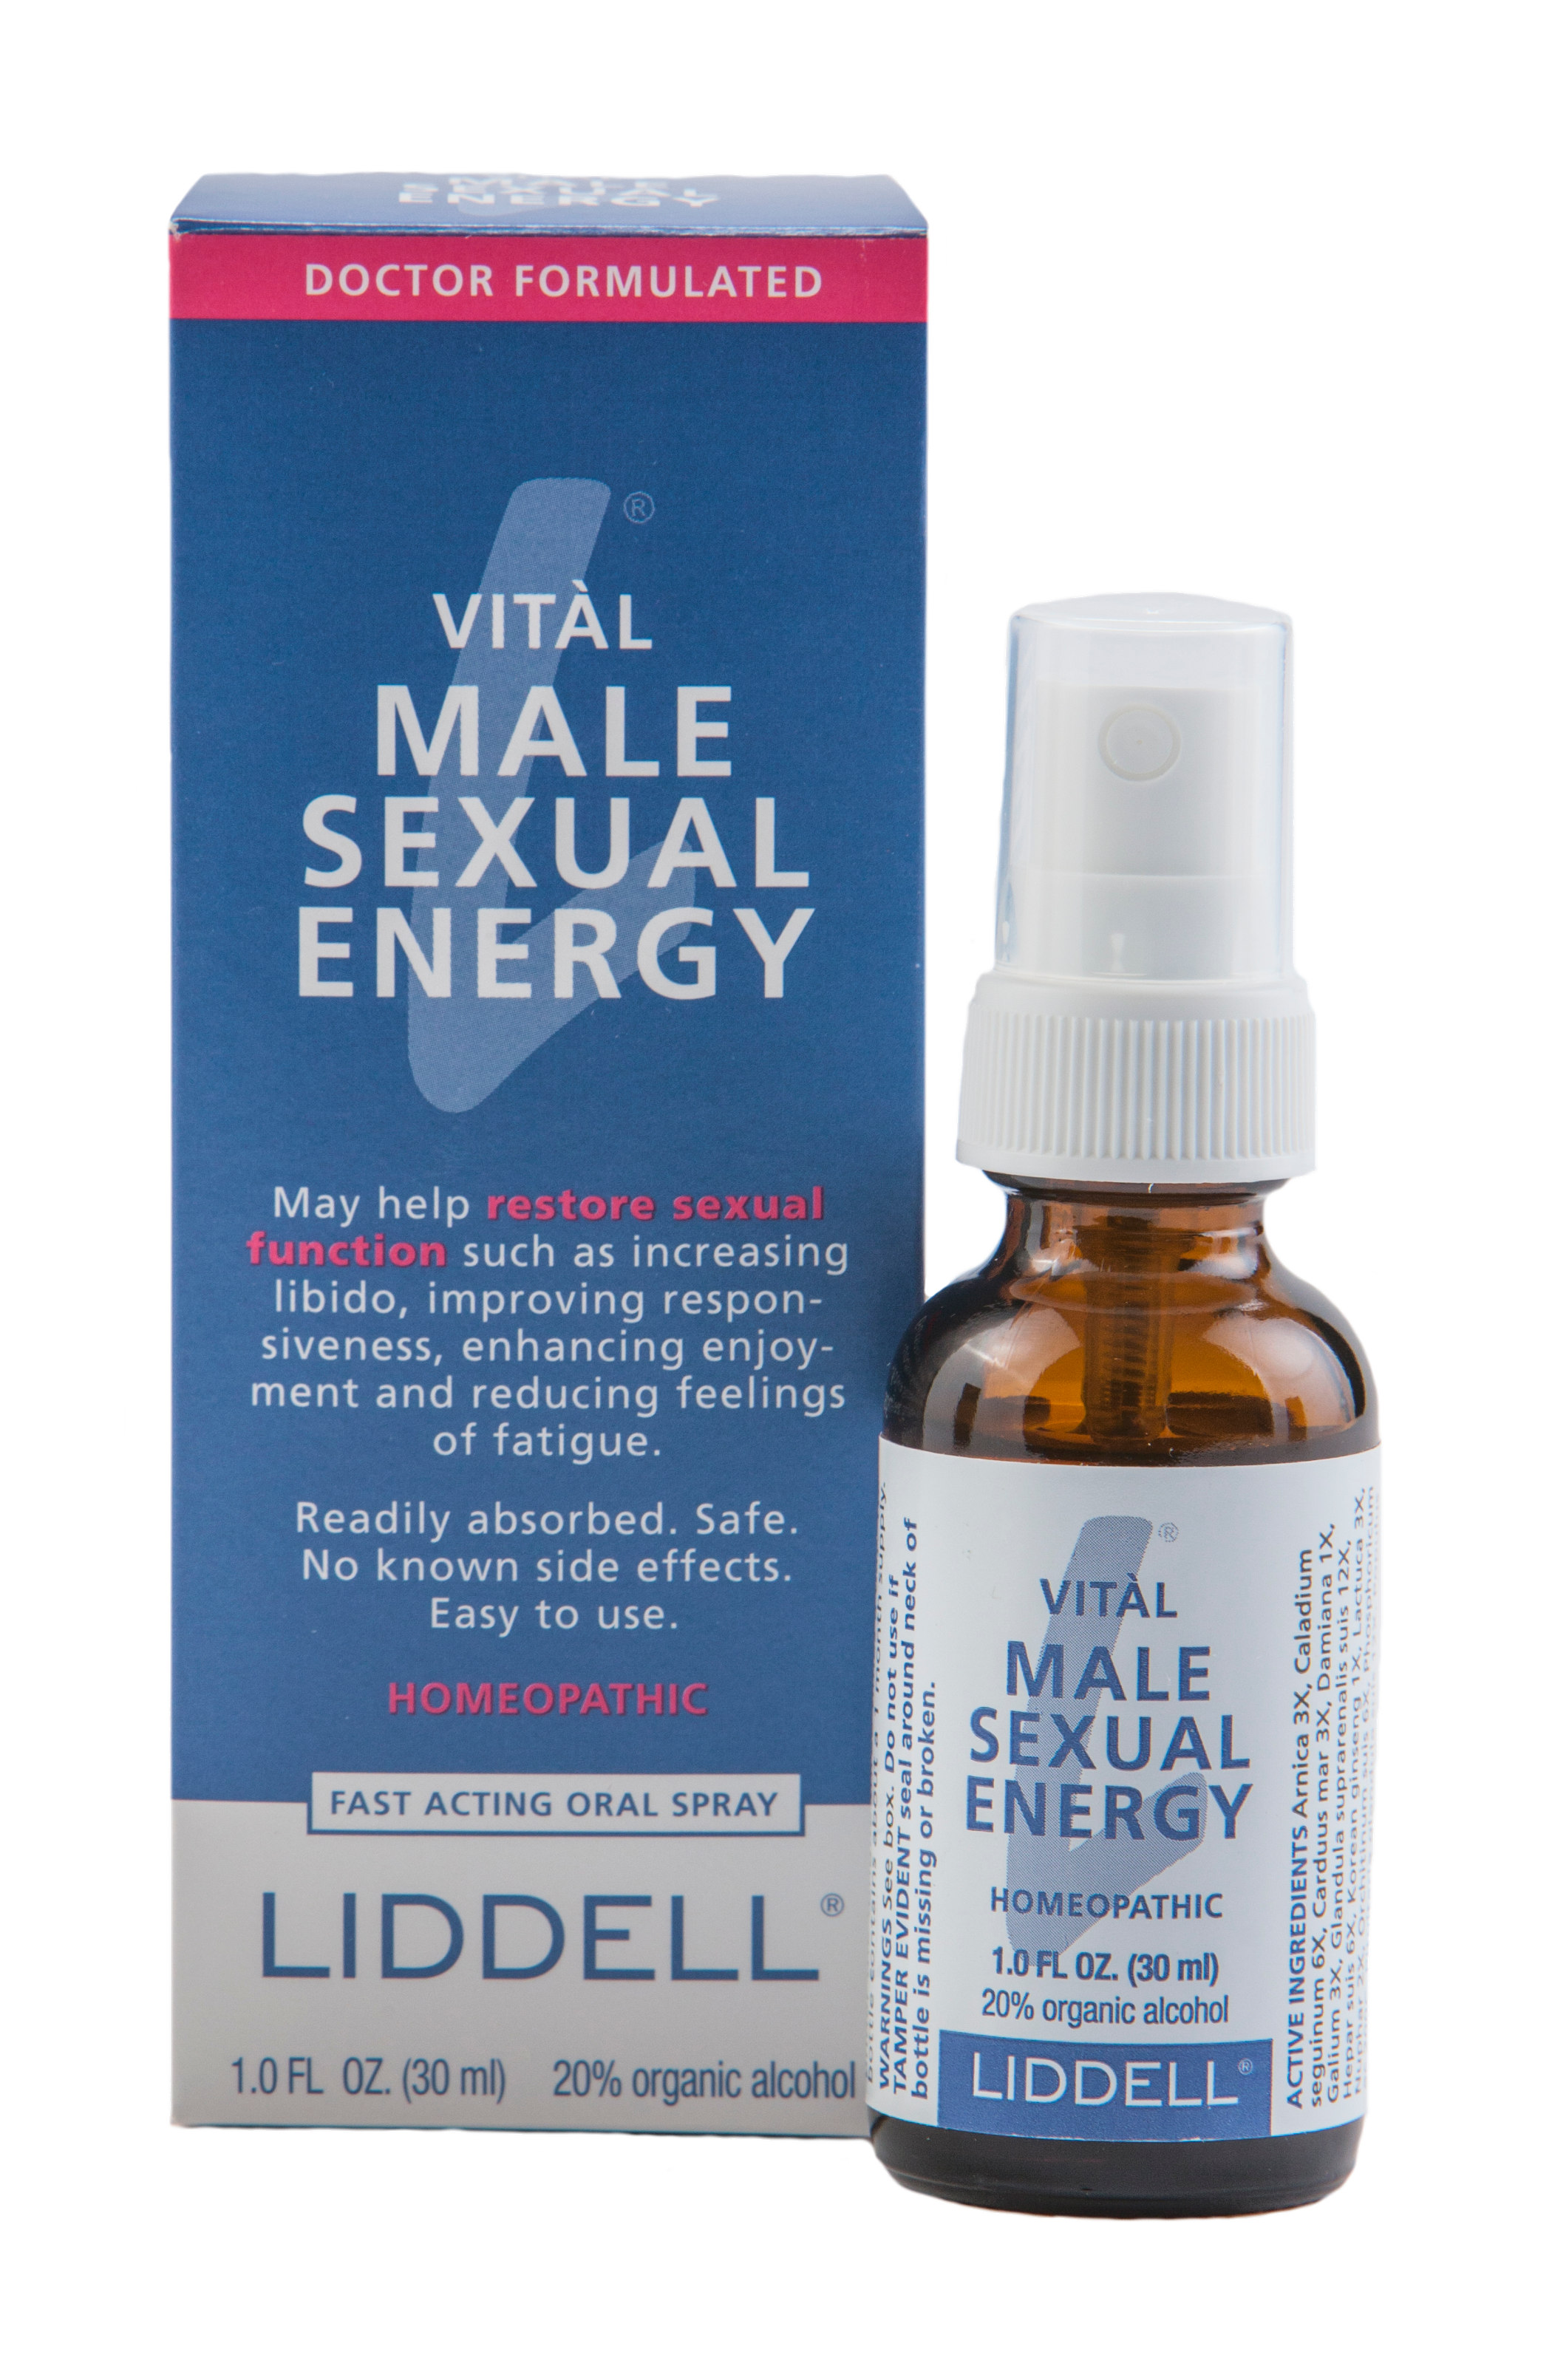 Vital Male Sexual Energy